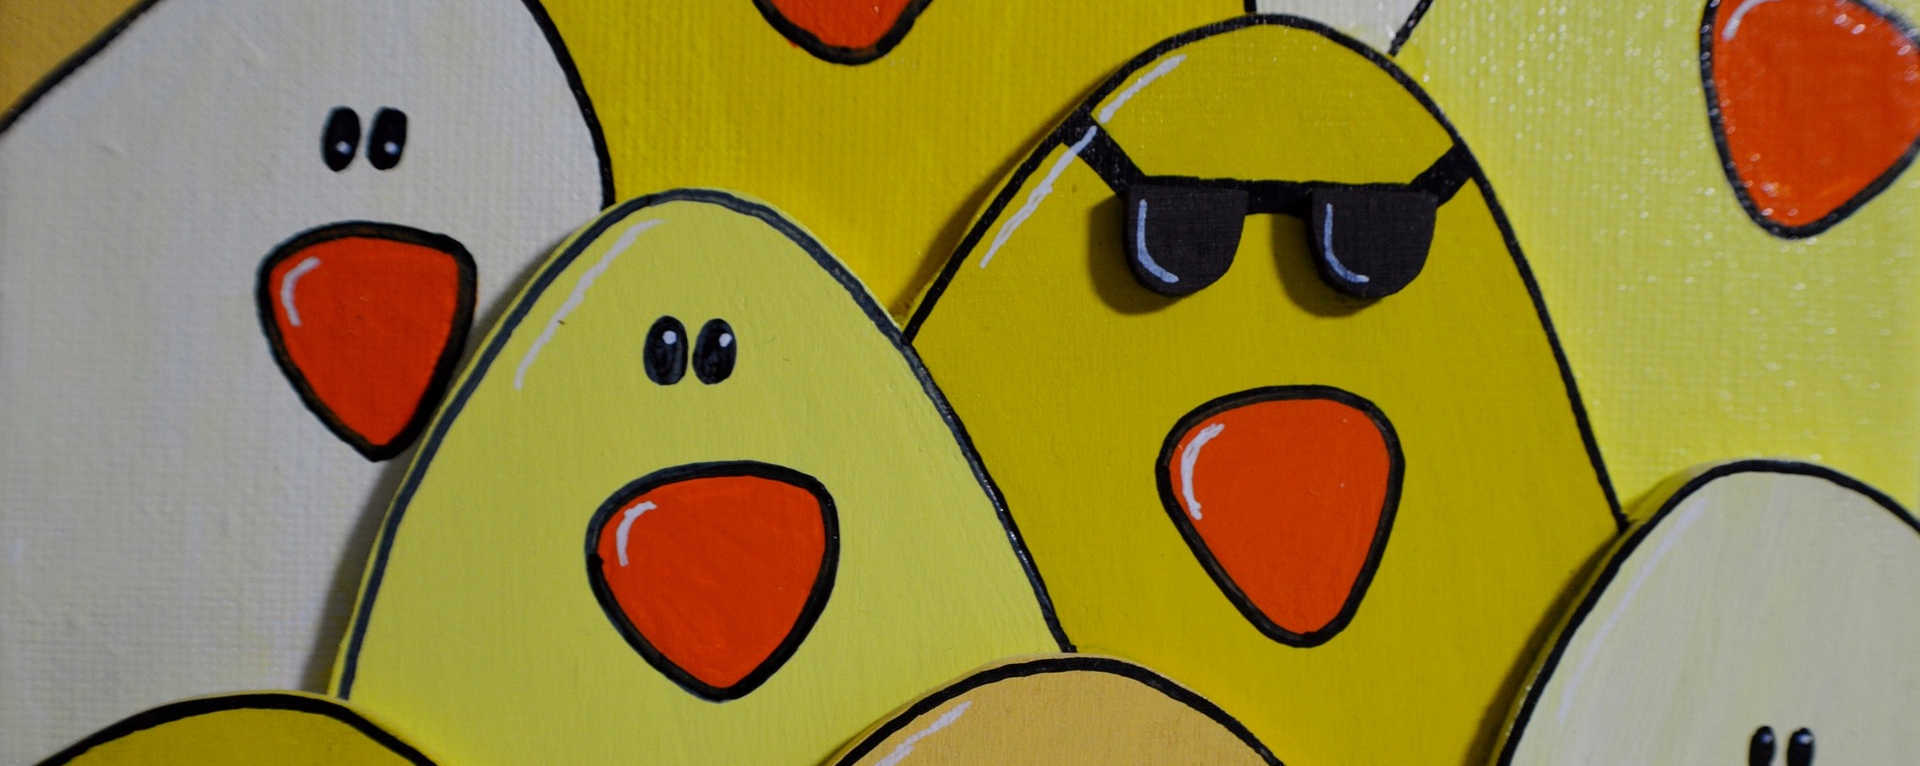 A depiction of how darkness influences unethical behavior, showing a chicken with sunglasses in the middle of other chickens without sunglasses.